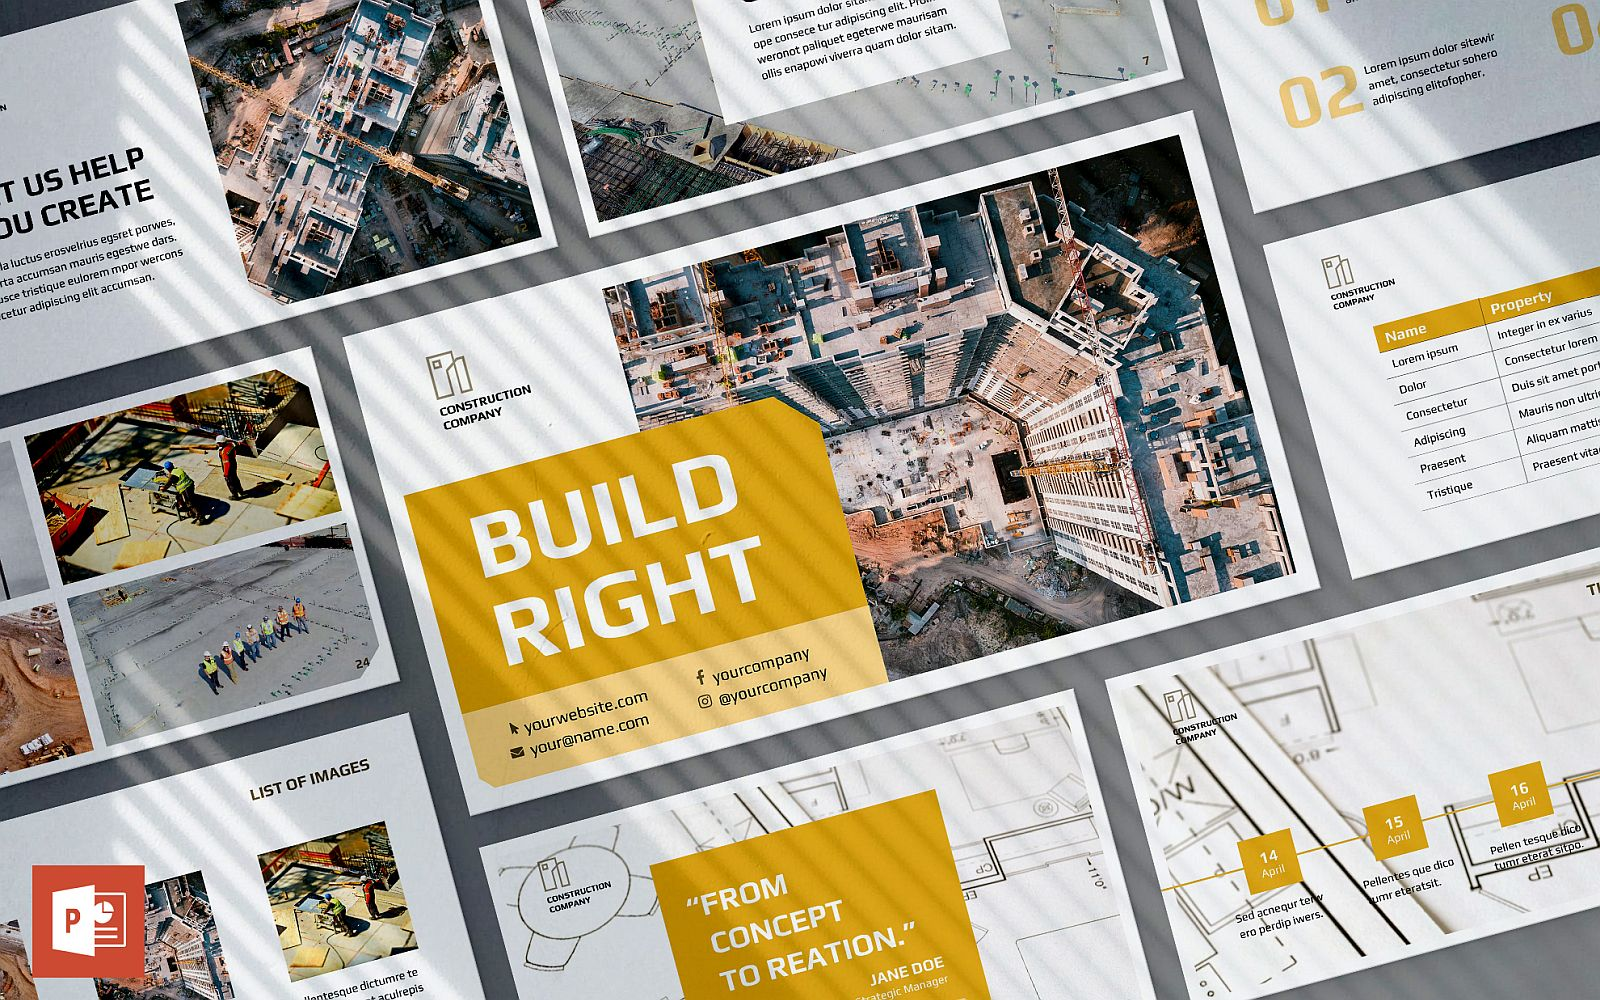 Construction Company Presentation PowerPoint template